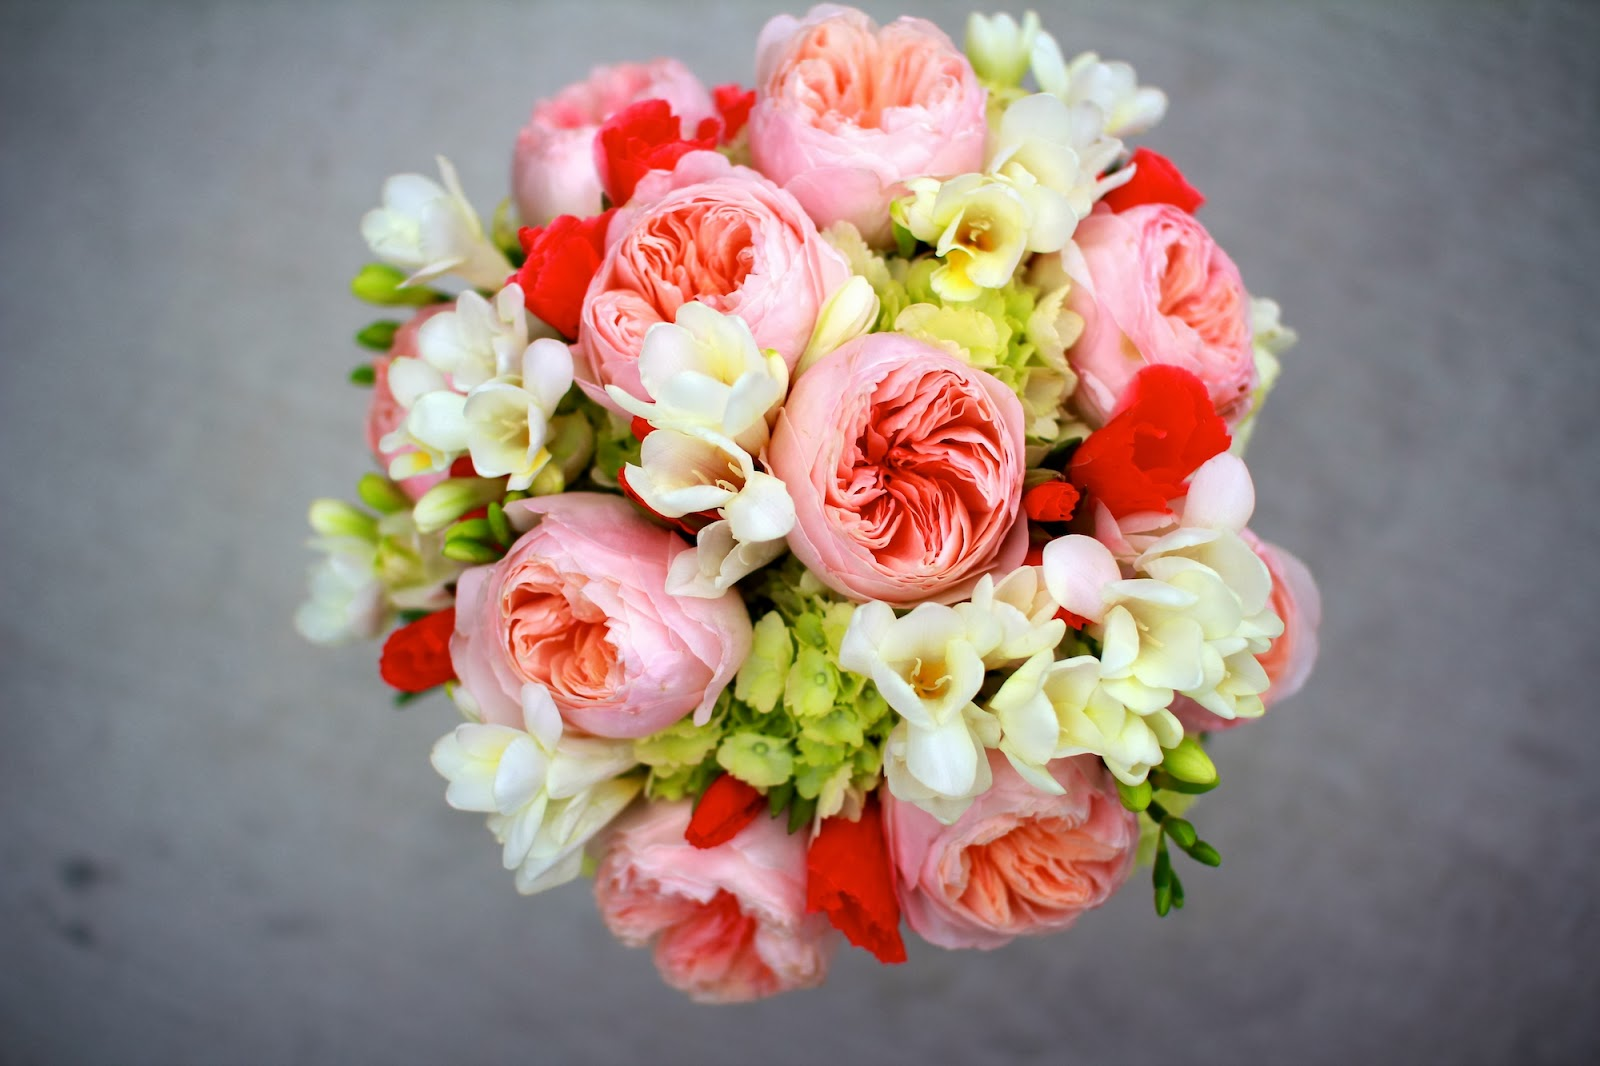 Wedding Flowers - Flower HD Wallpapers, Images, PIctures ...